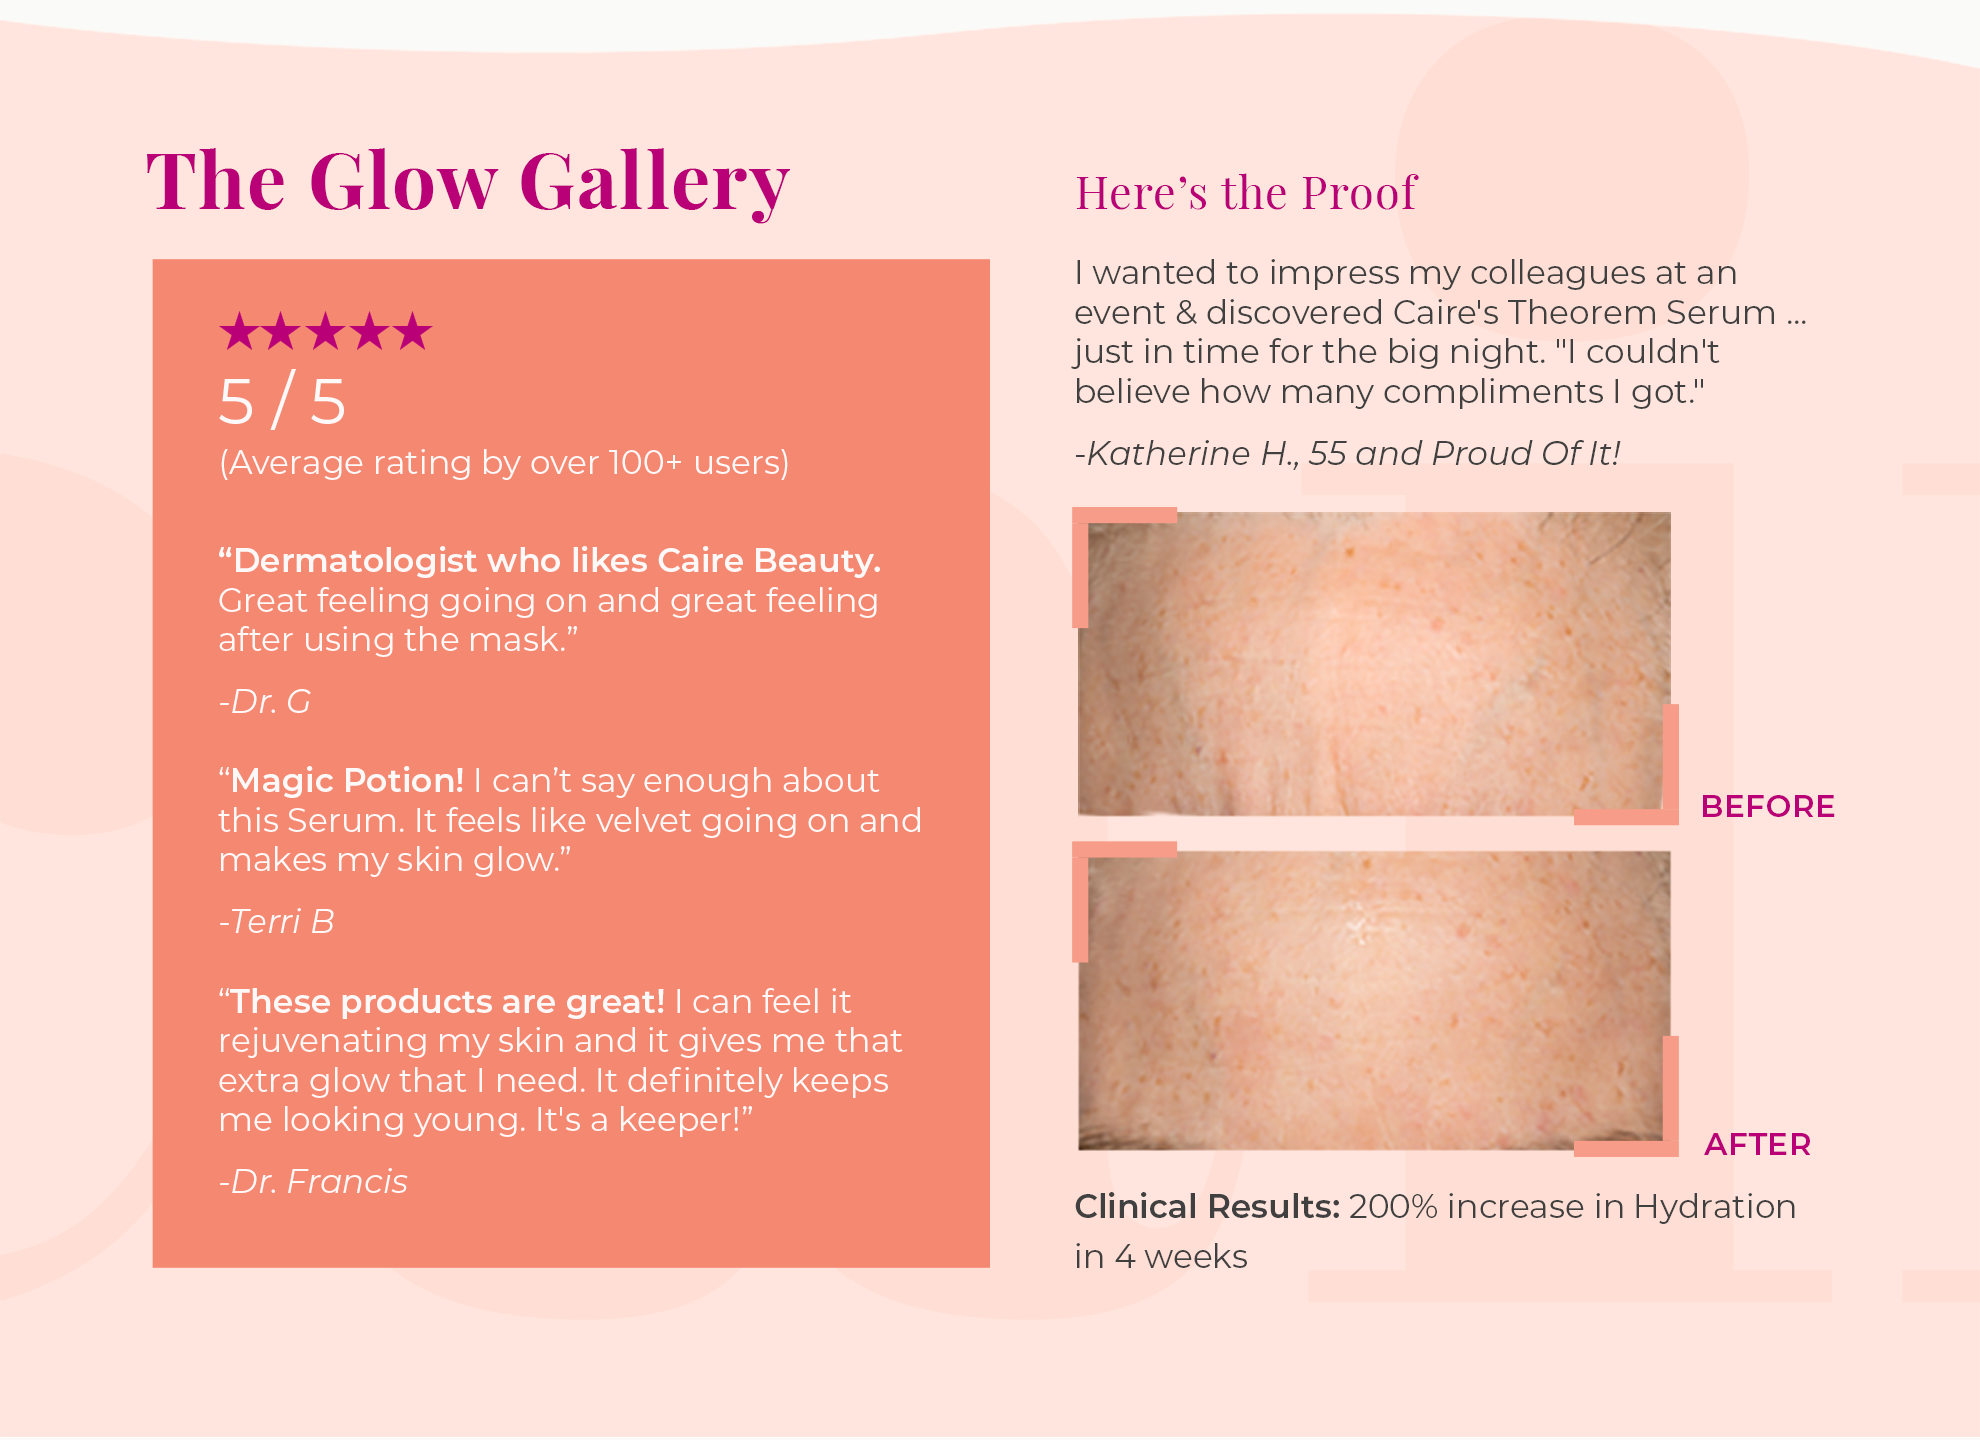 The Glow Gallery | Caire Beauty